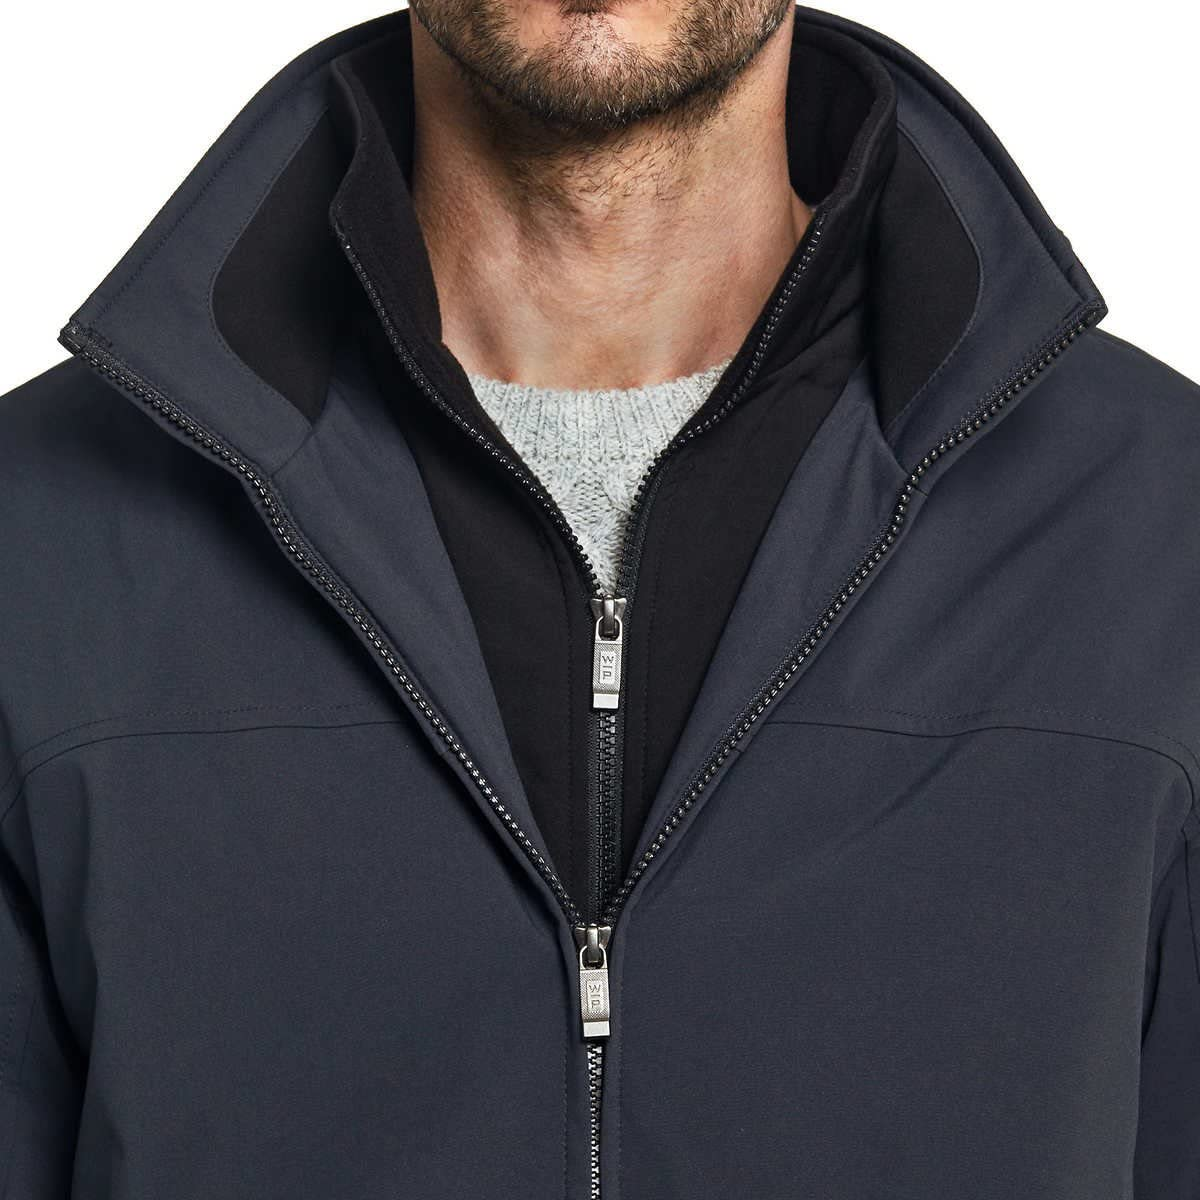 Weatherproof Ultra Tech Mens Jacket Double Zip Hooded Water Repellant Coat